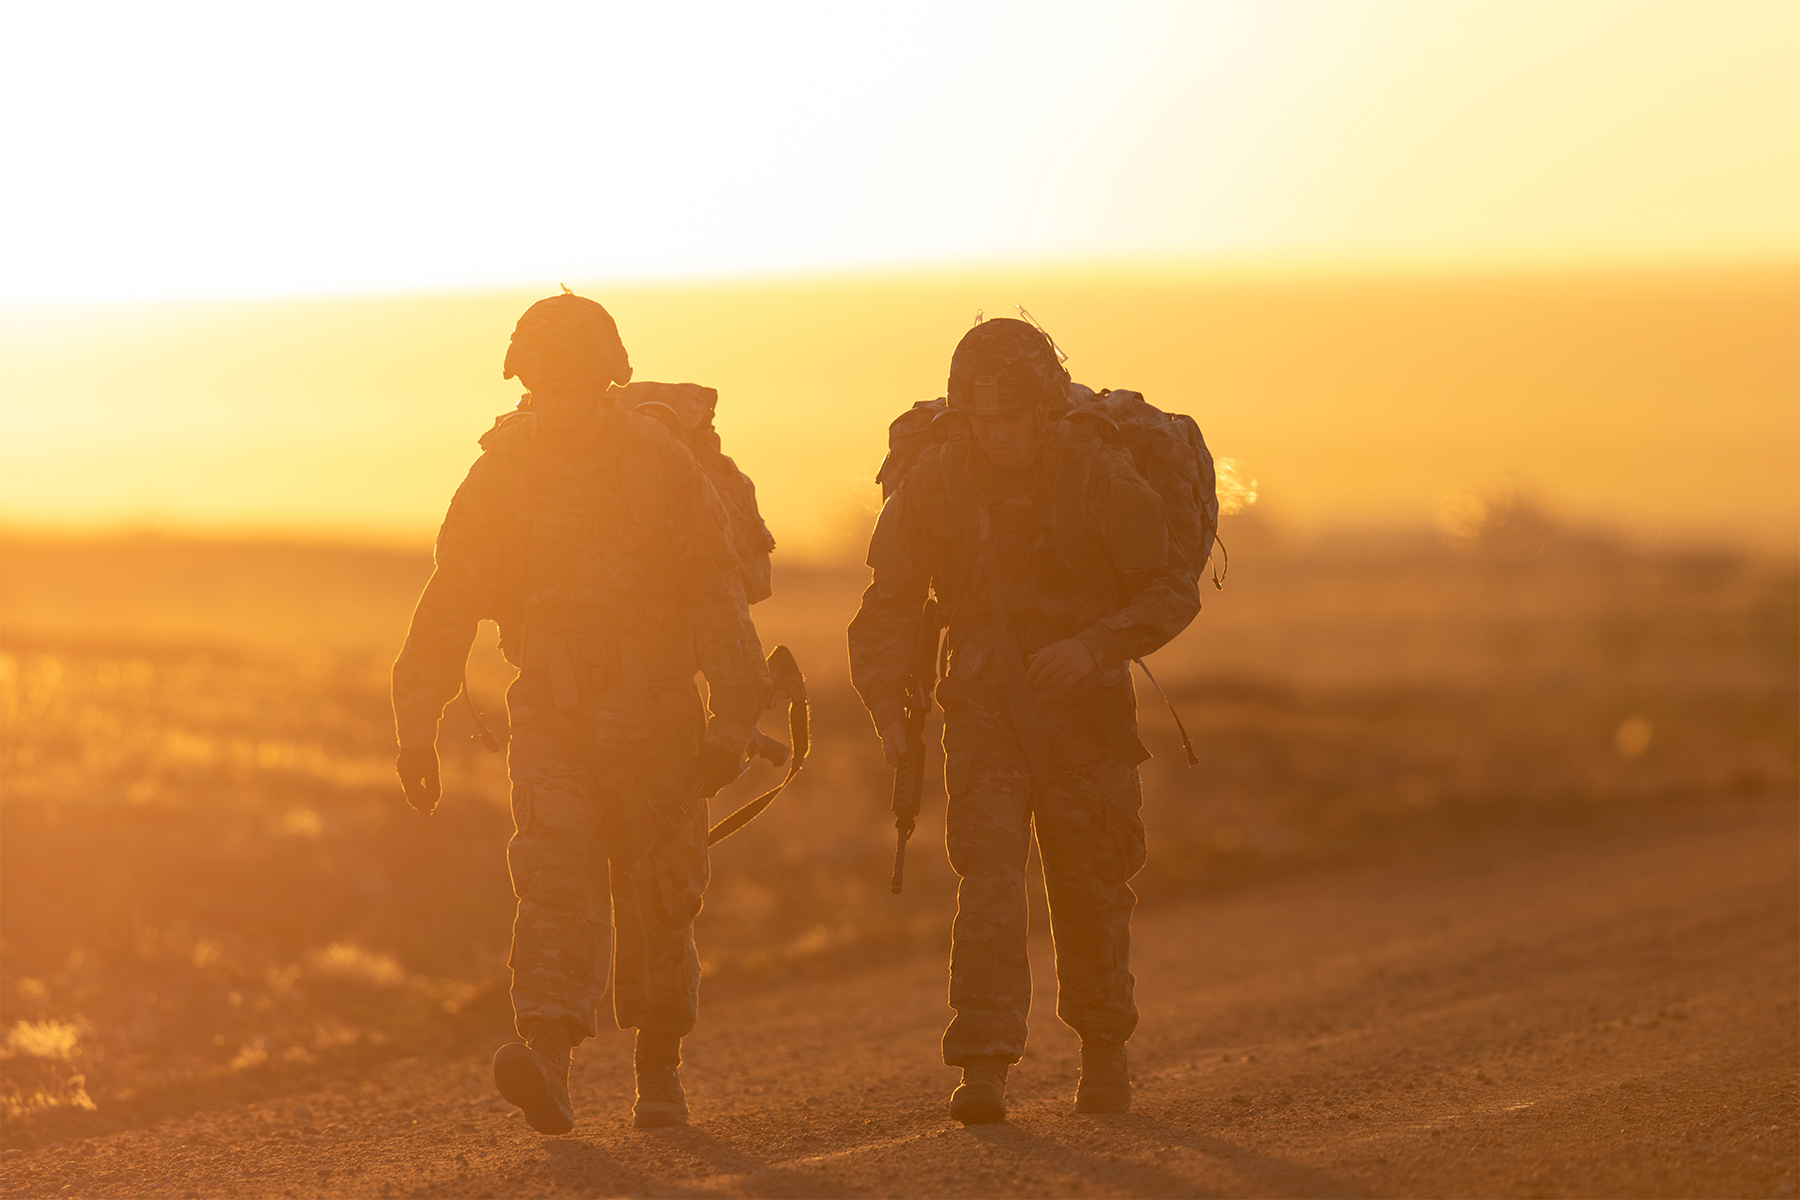 Army Spcs. Eduardo Siordia and Keith Zimmerman approach the midpoint of a 12-mile ruck march during the Best Warrior competition at Fort Carson, Colo., April 26, 2019. (Sgt. Micah Merrill/Army)